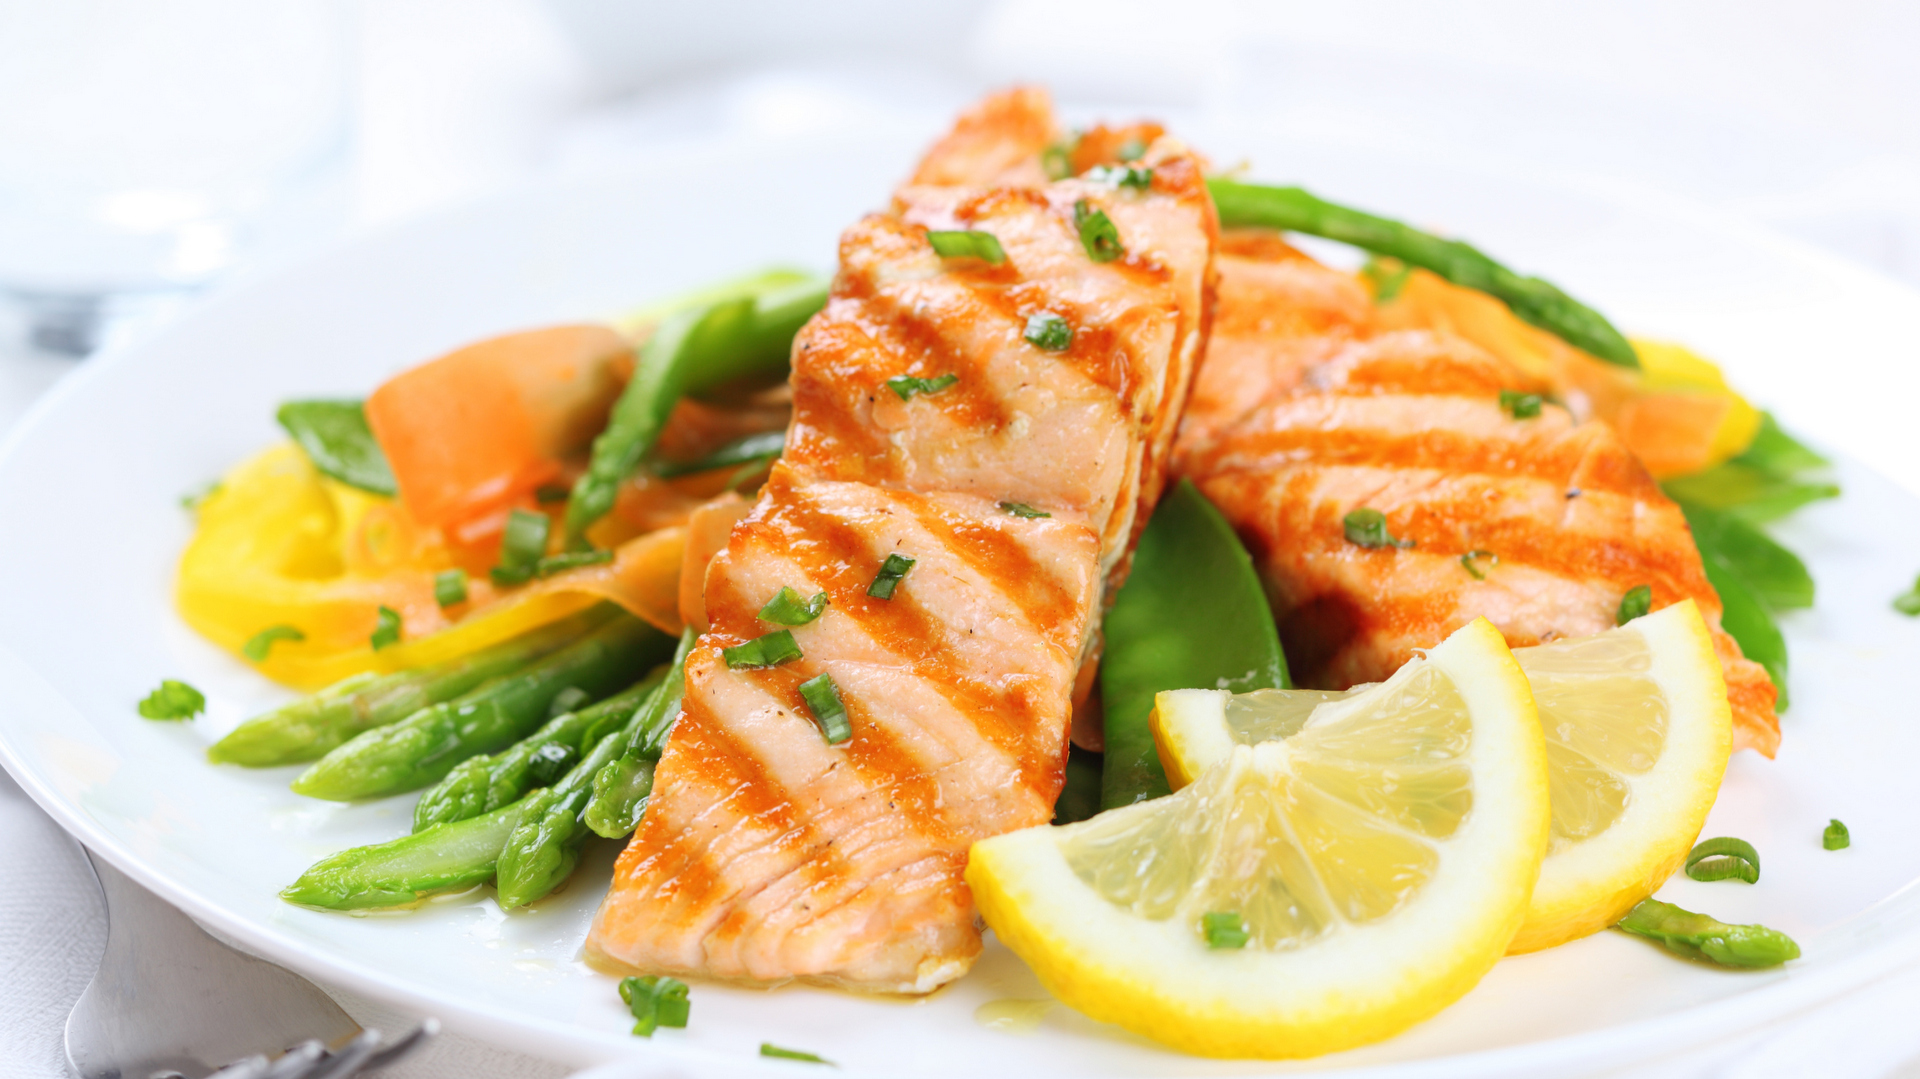 Salmon during pregnancy